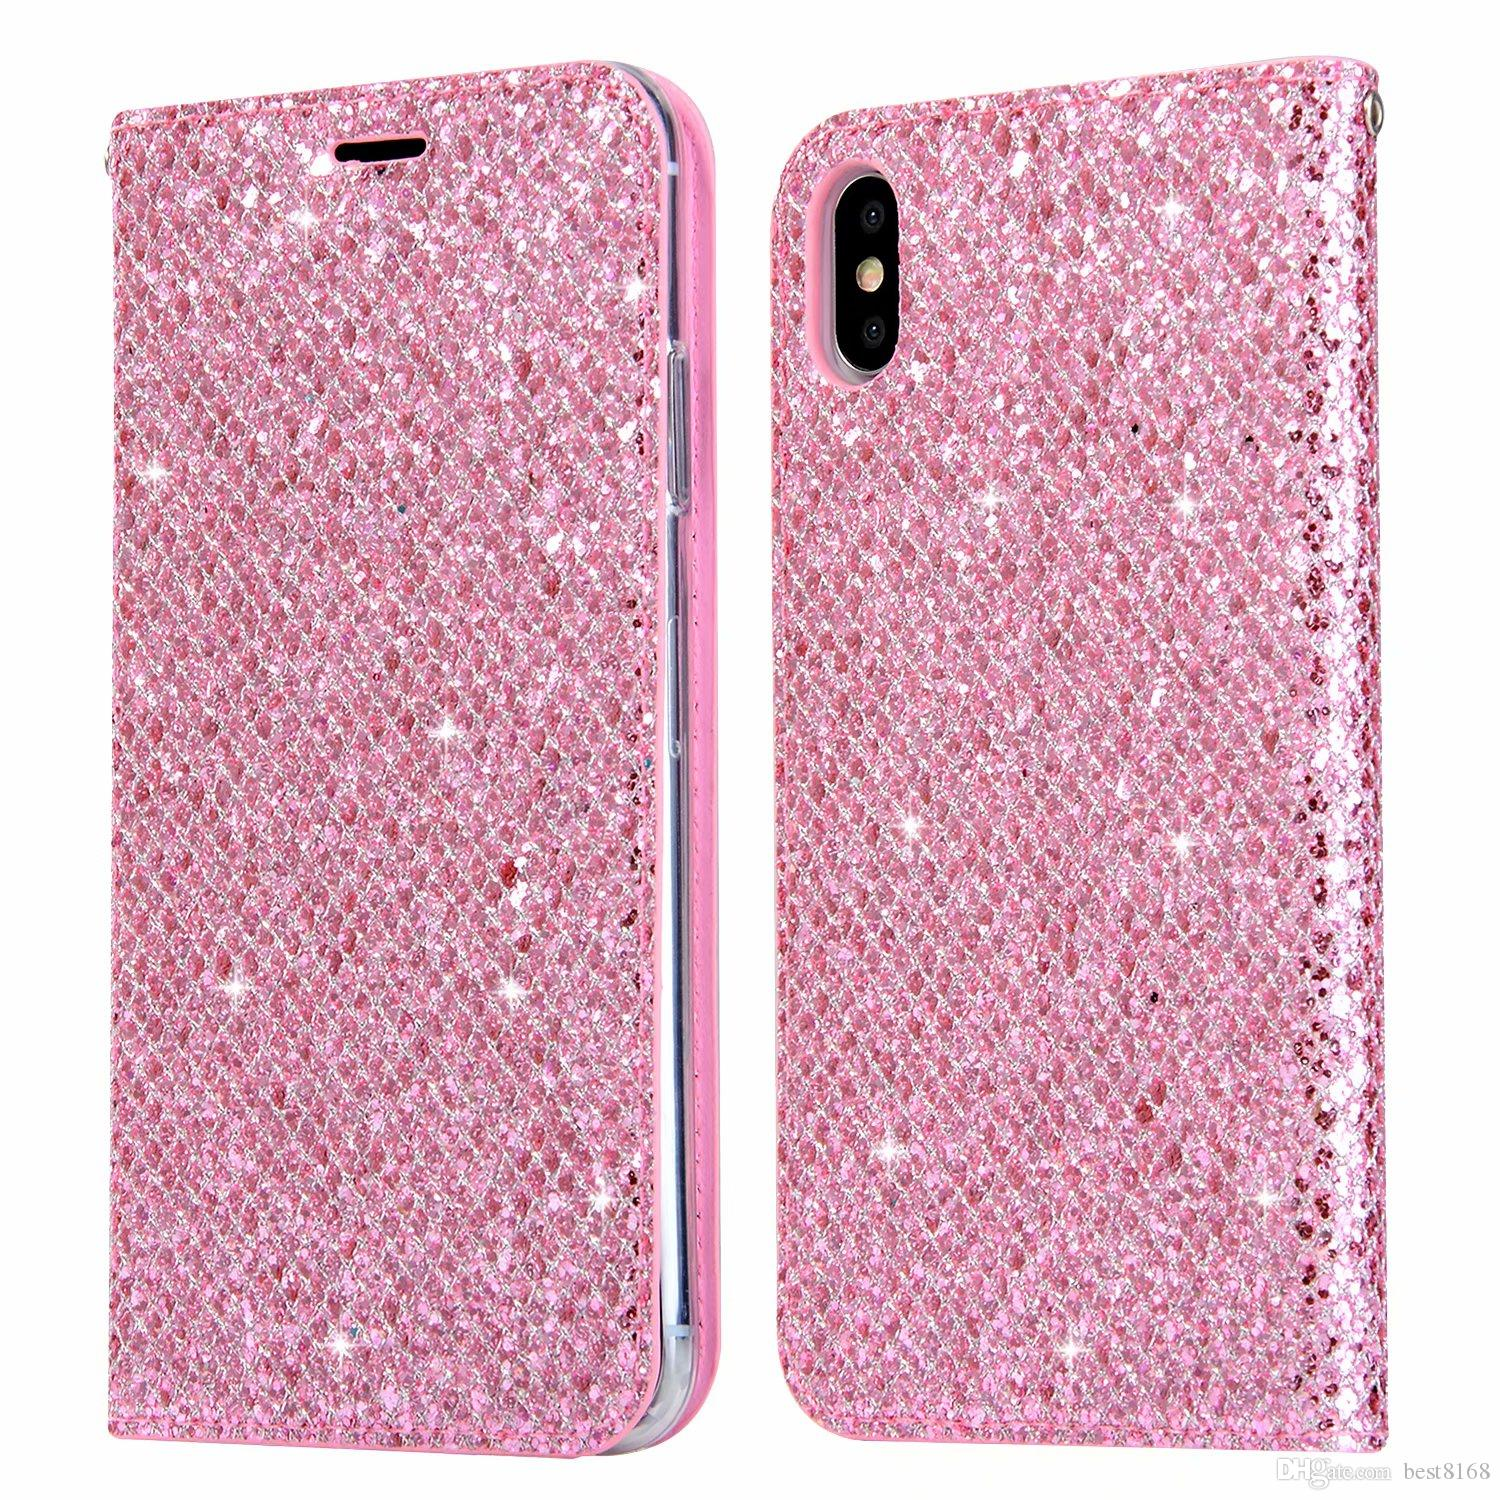 huge selection of 730db 64fde For Huawei P20 Pro P9 P10 Lite Magnetic Closure Leather Wallet Case  Galaxy(A8 Plus A7 A5)2018 Bling Sparkle Glitter Suck Phone Flip Covers